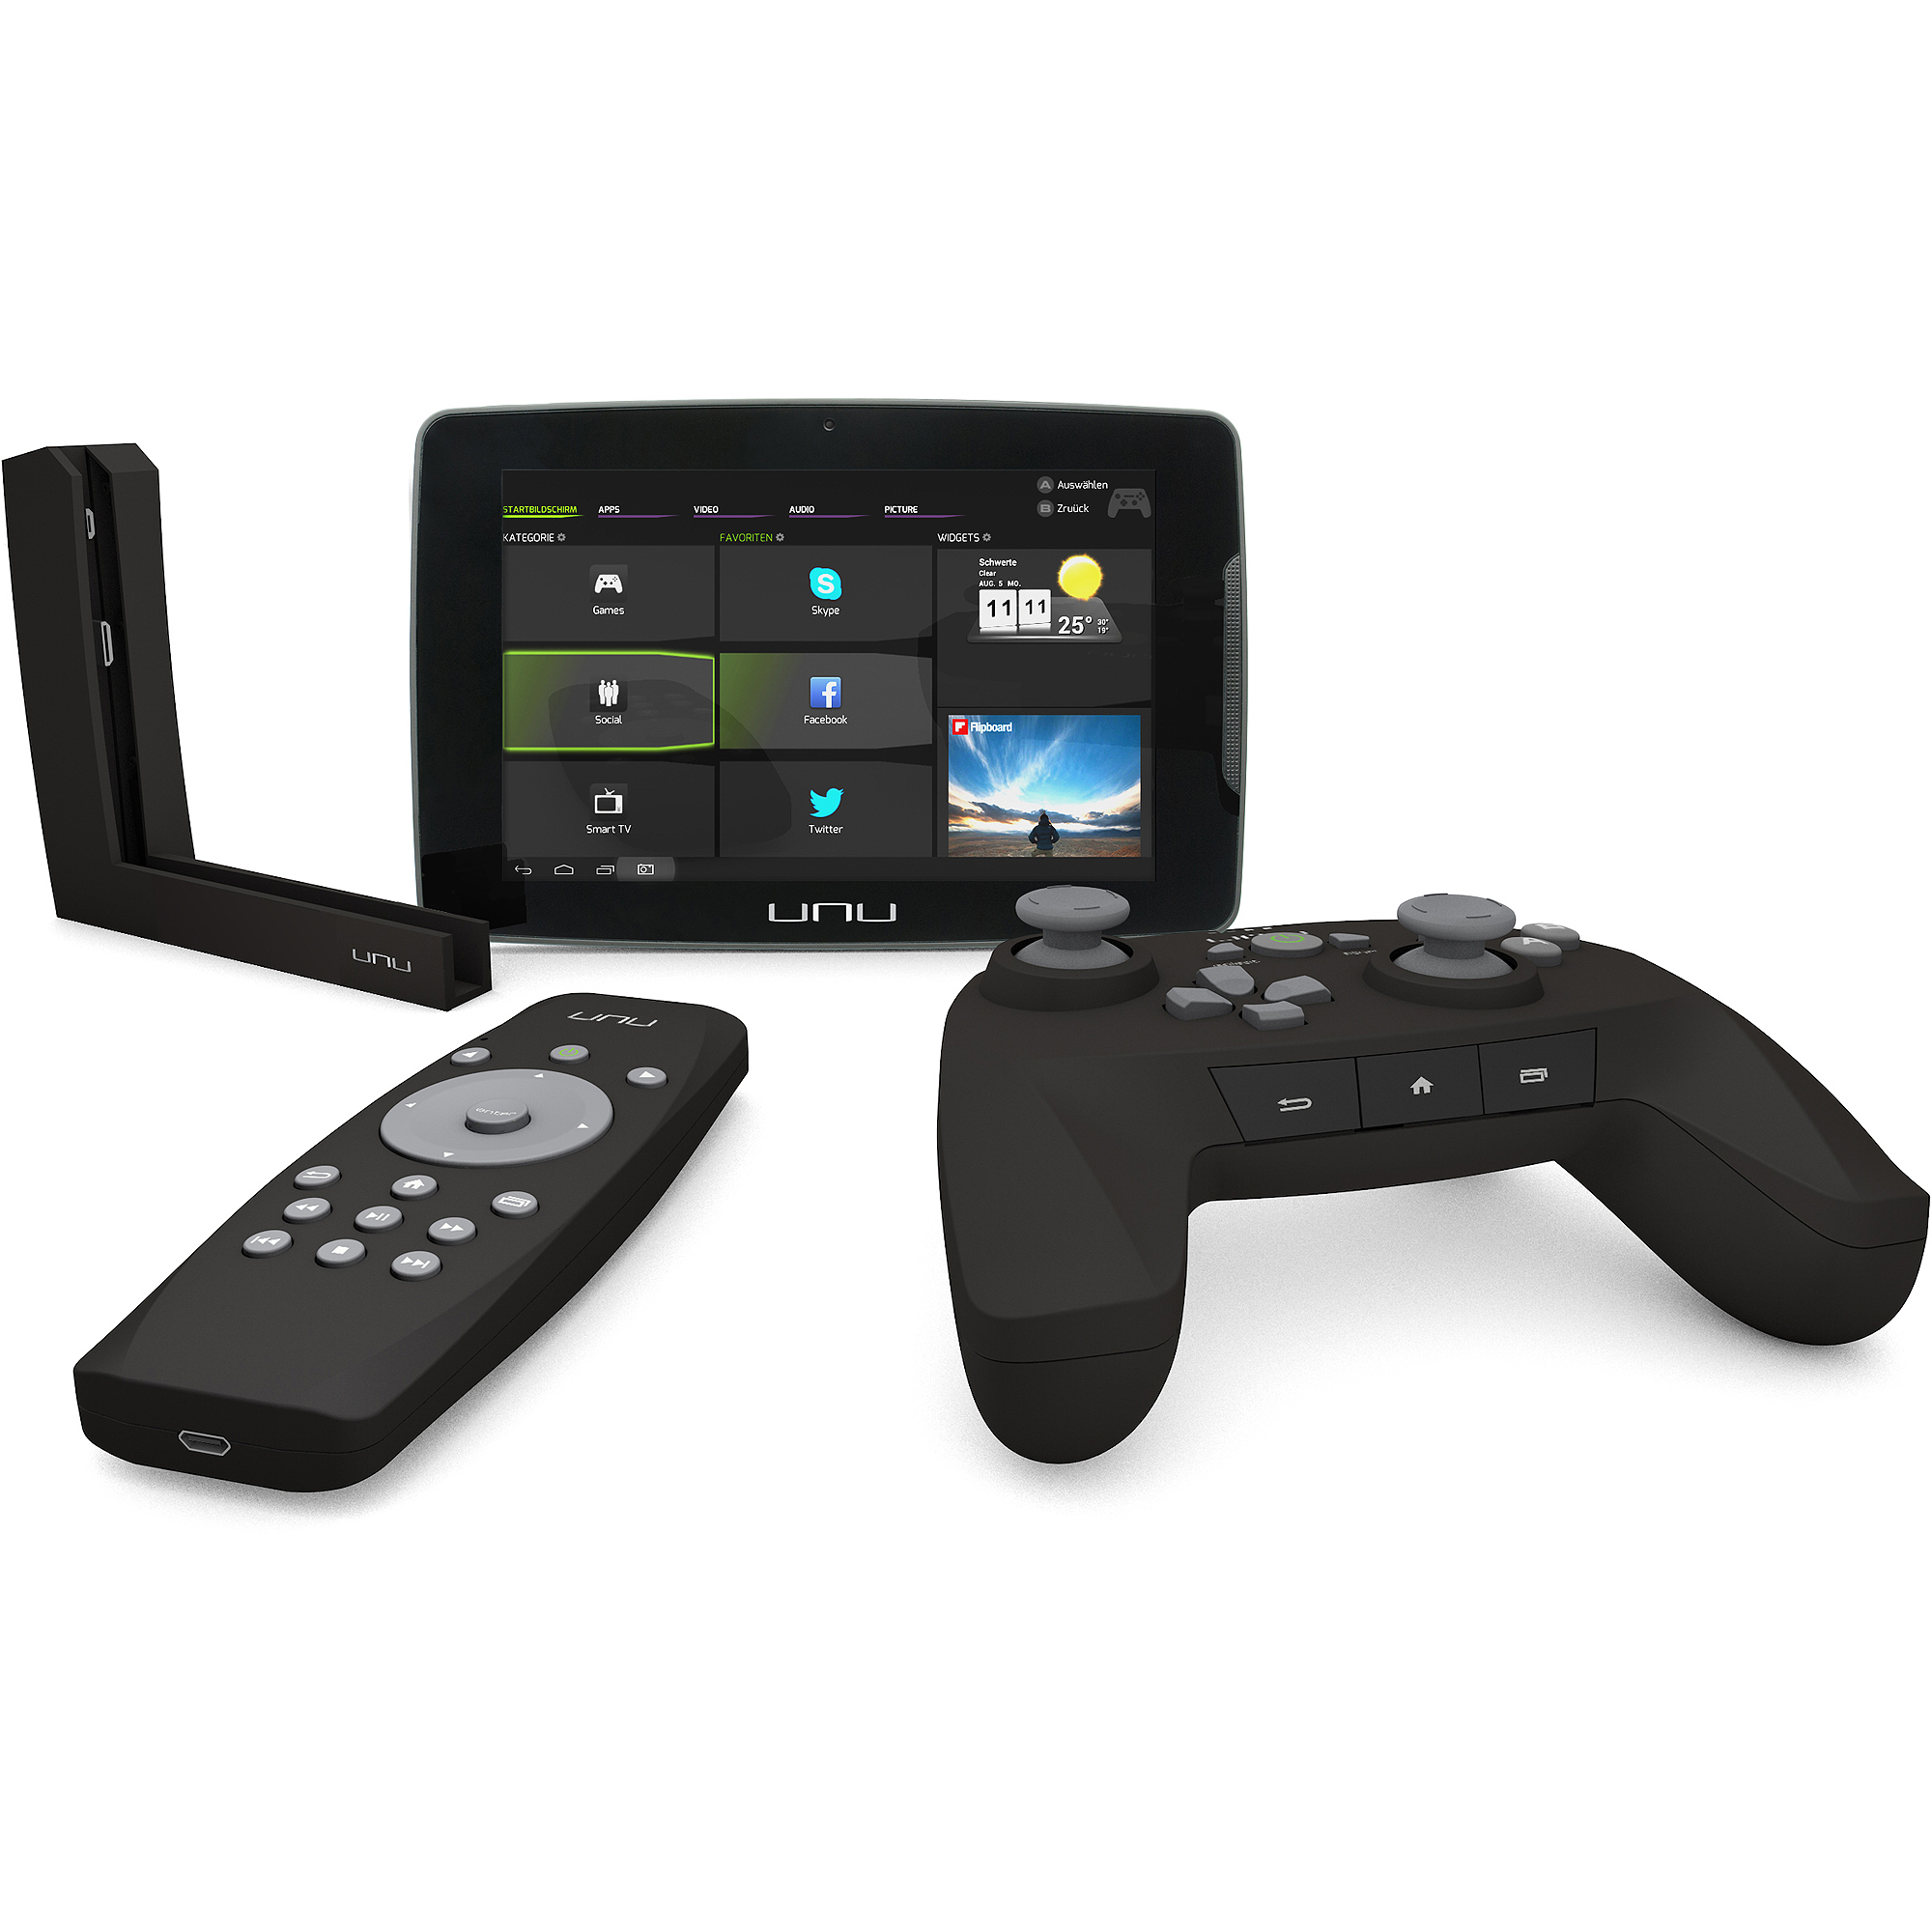 "Snakebyte Vyper Gaming Quad-Core 8GB Android 4.2 7"" Tablet w/ Dock & Controller"